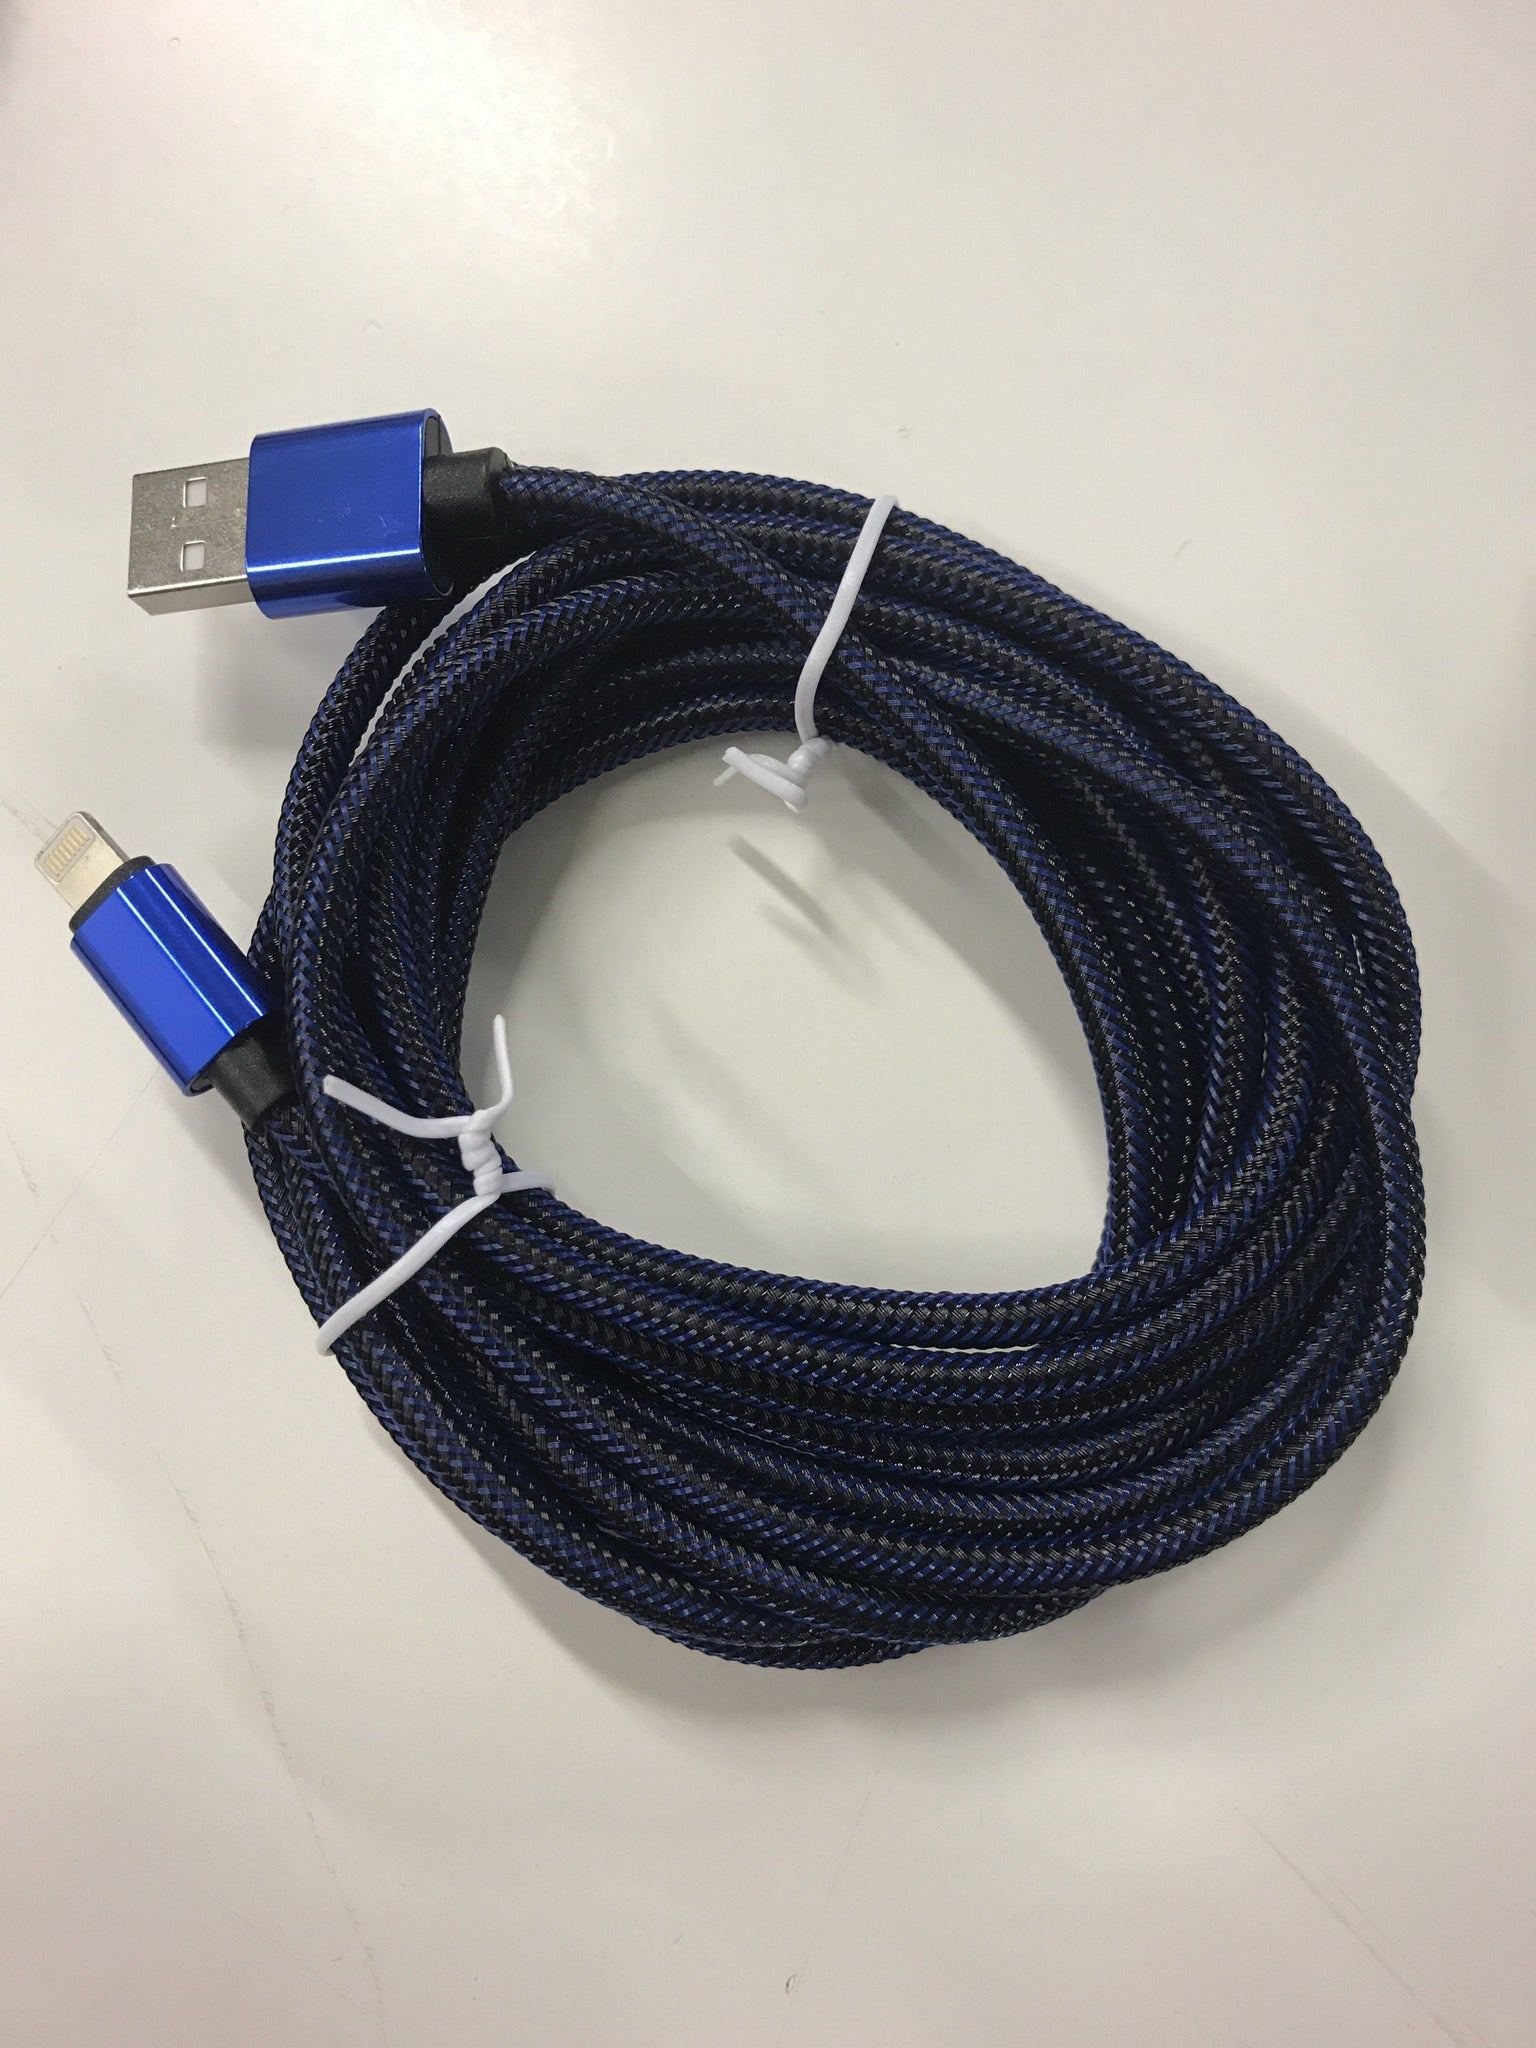 Braided USB Lightning Cable 3 Feet - Blue